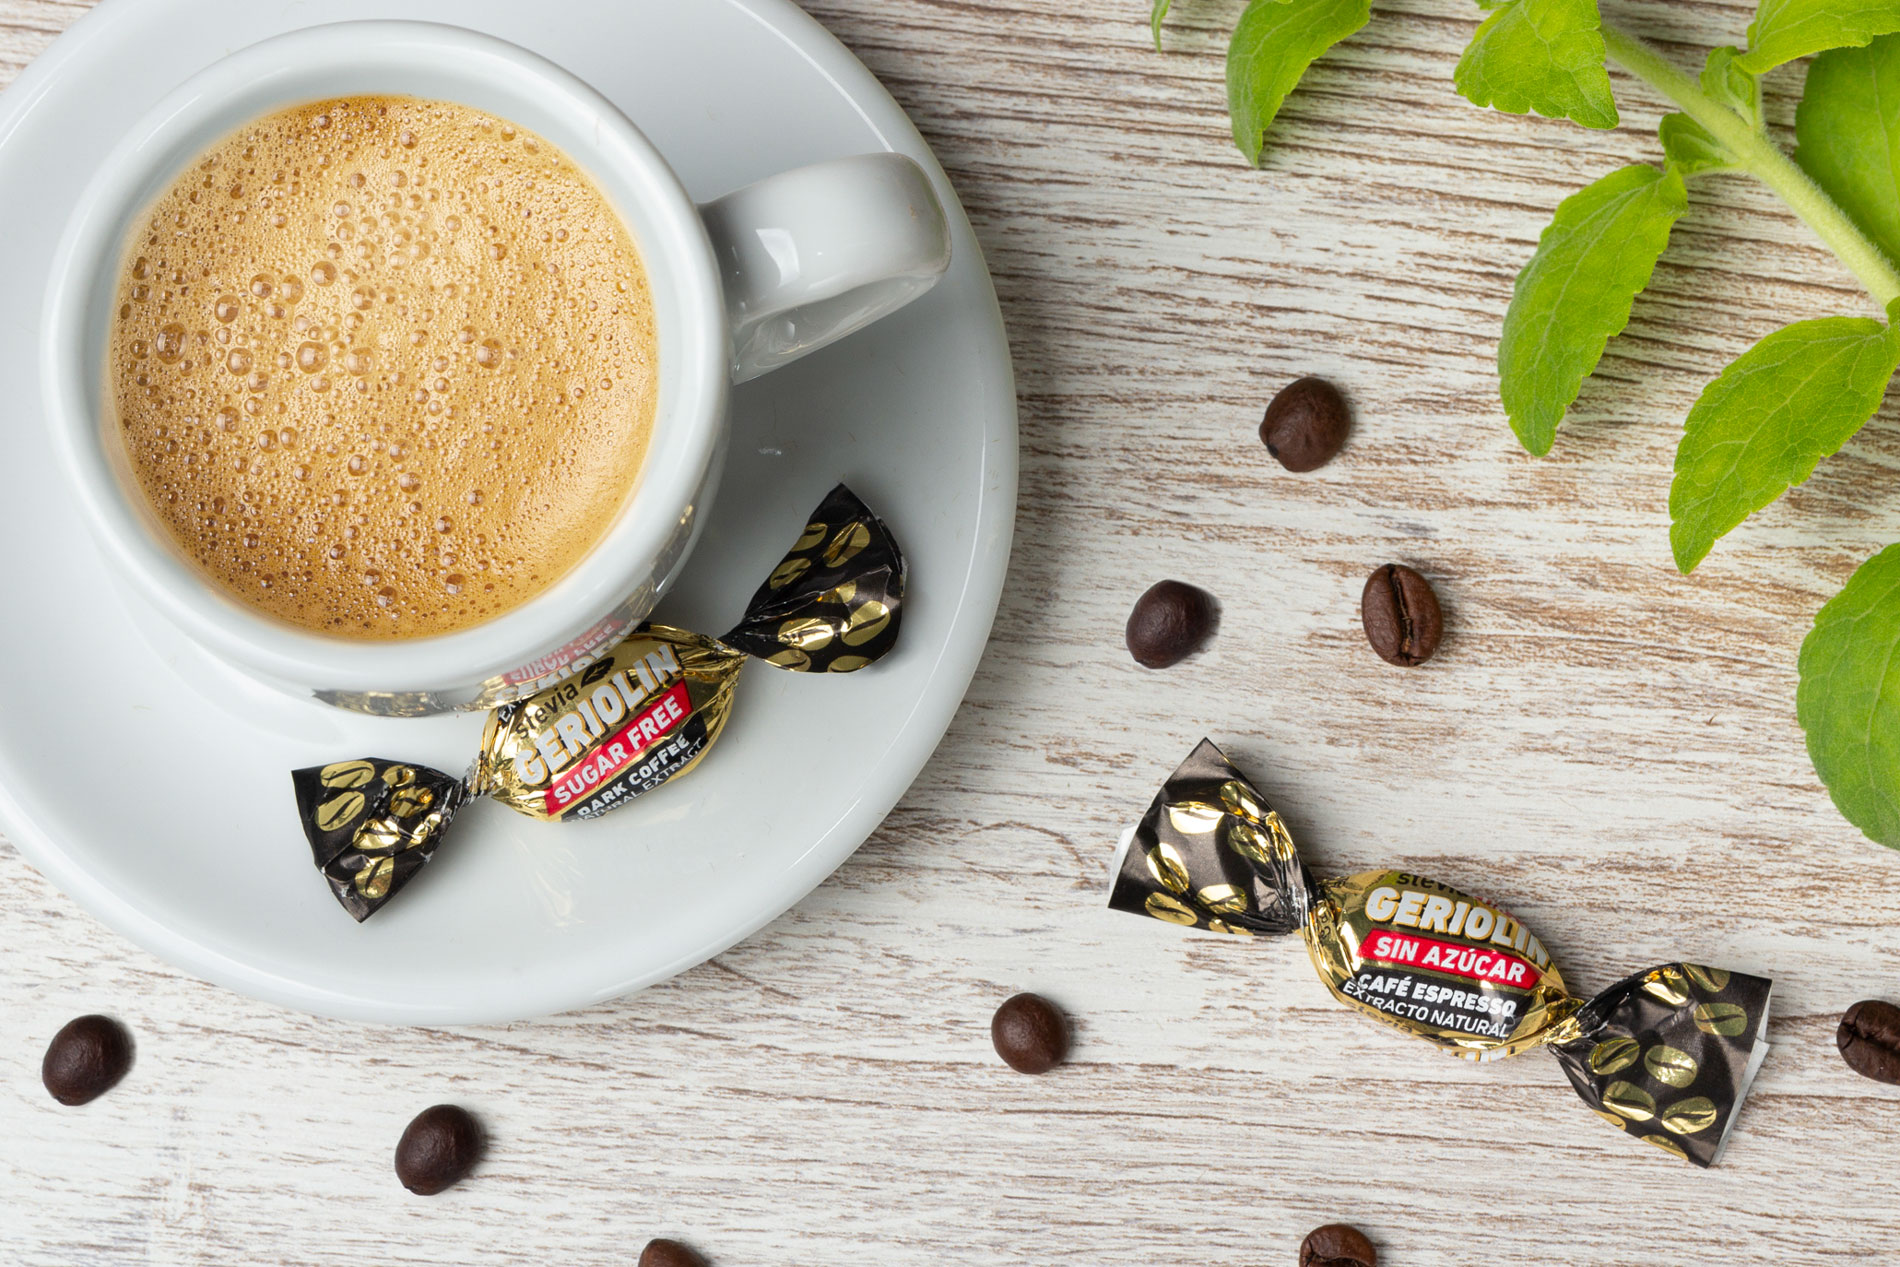 Sugar free coffee candy